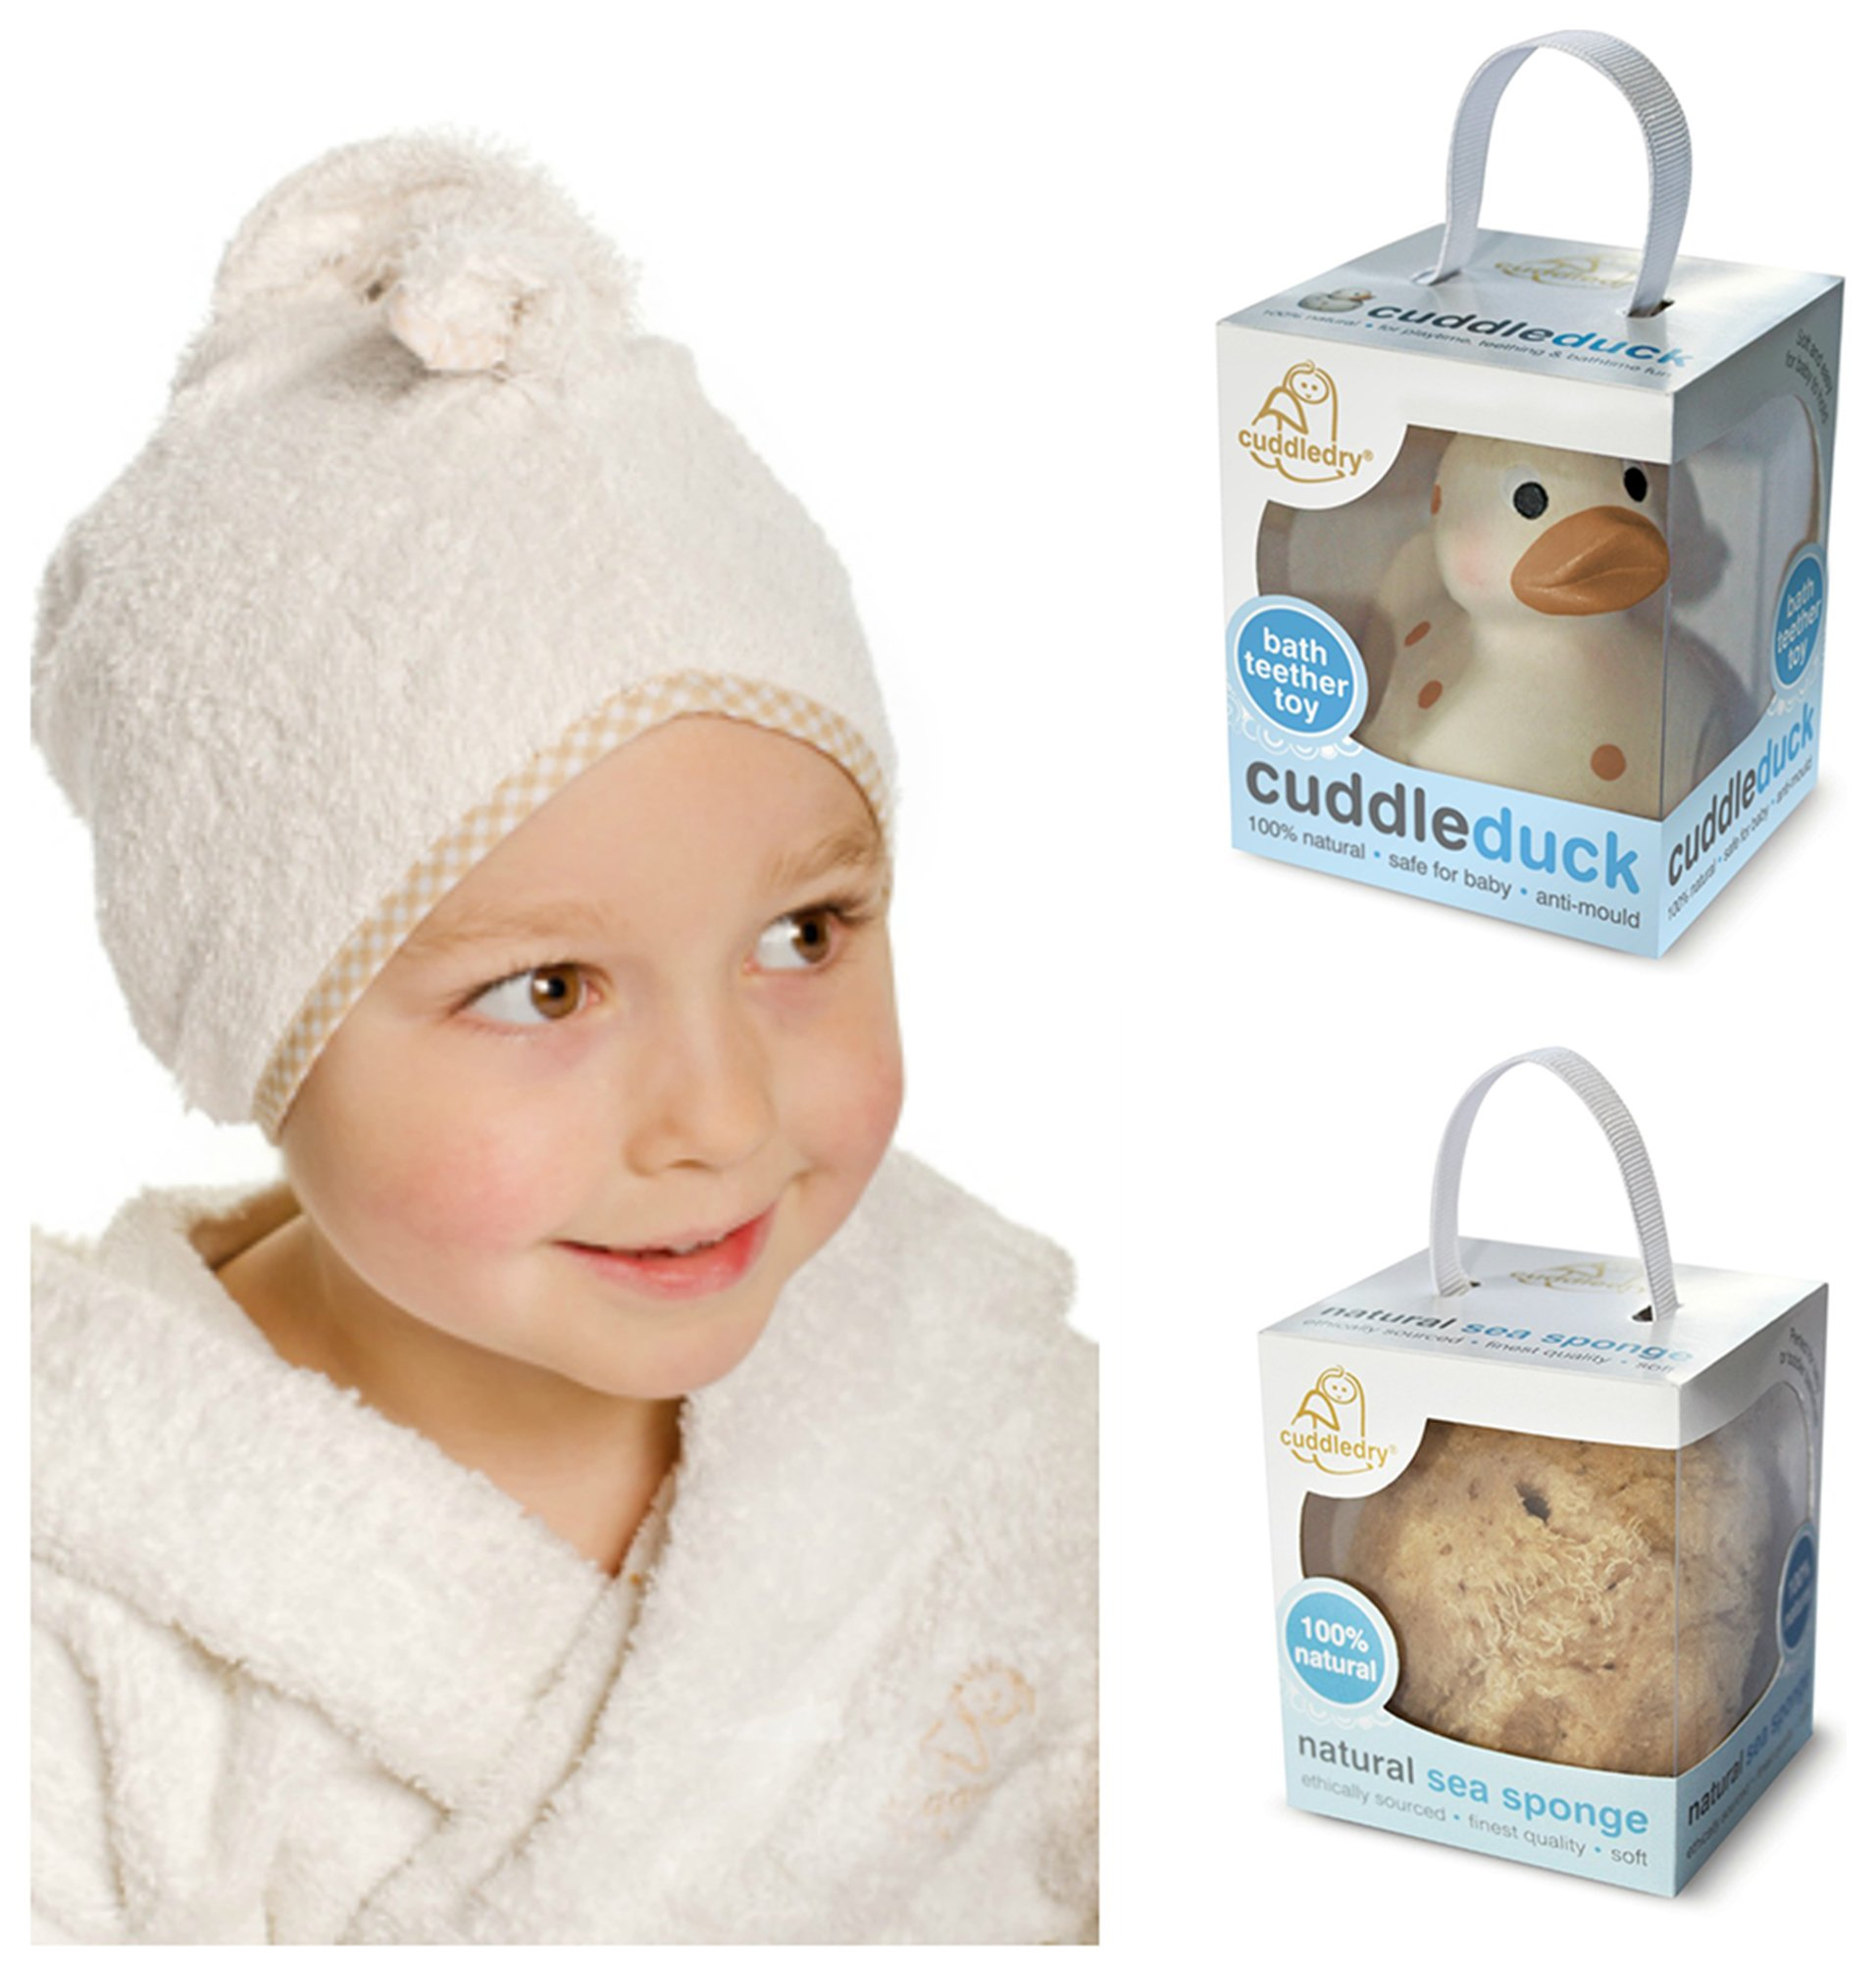 Image of Cuddledry Cuddletwist Hair Towel, Cuddleduck and Sponge Set.